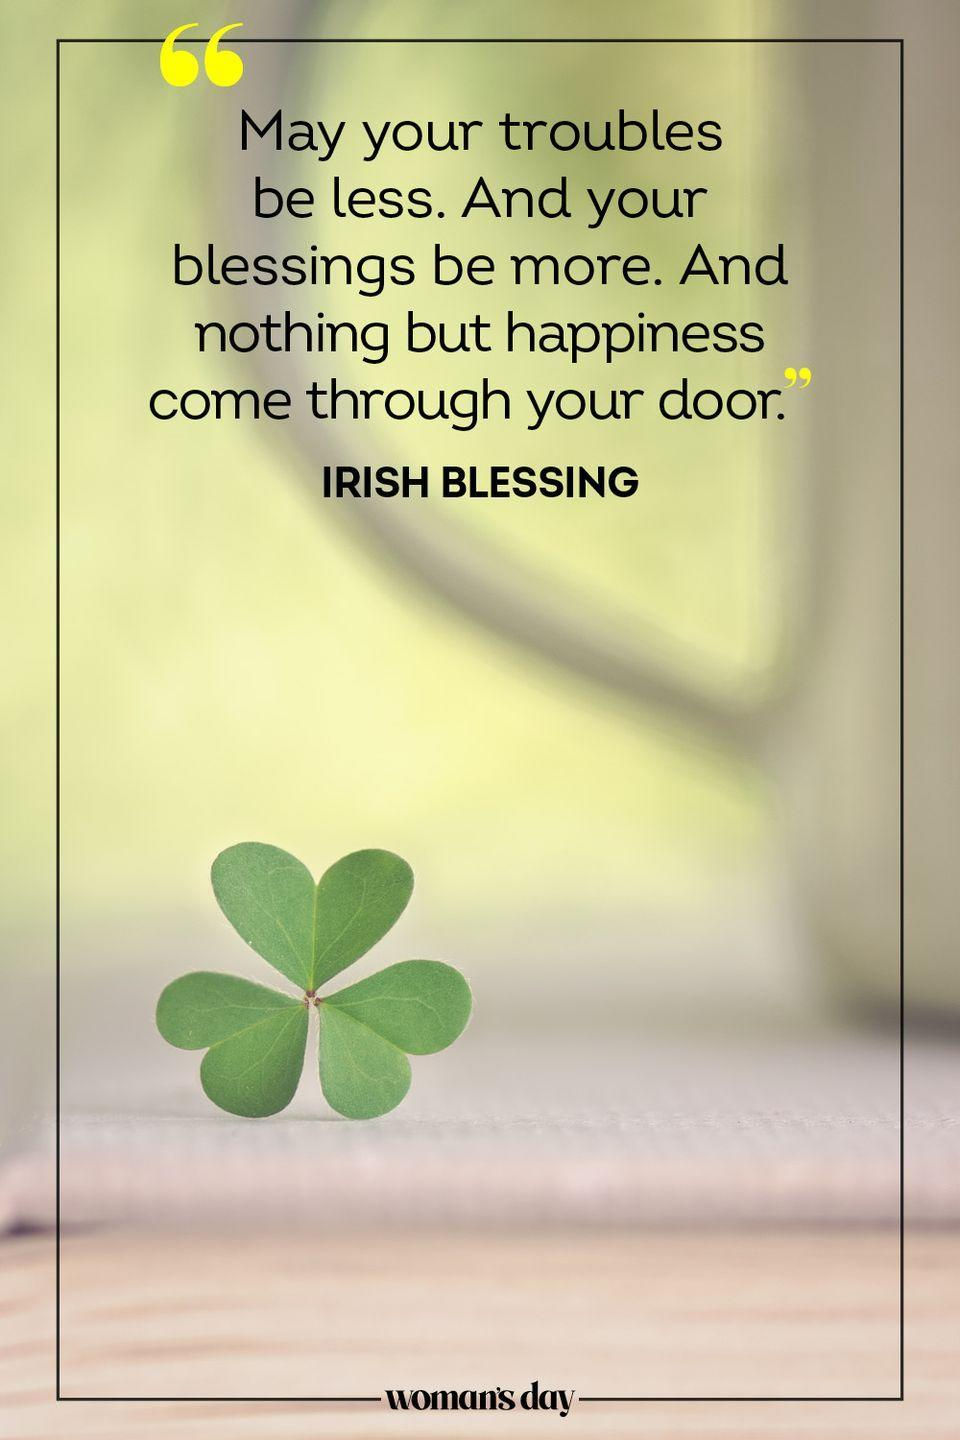 """<p>""""May your troubles be less. And your blessings be more. And nothing but happiness come through your door."""" — Irish Blessing</p>"""